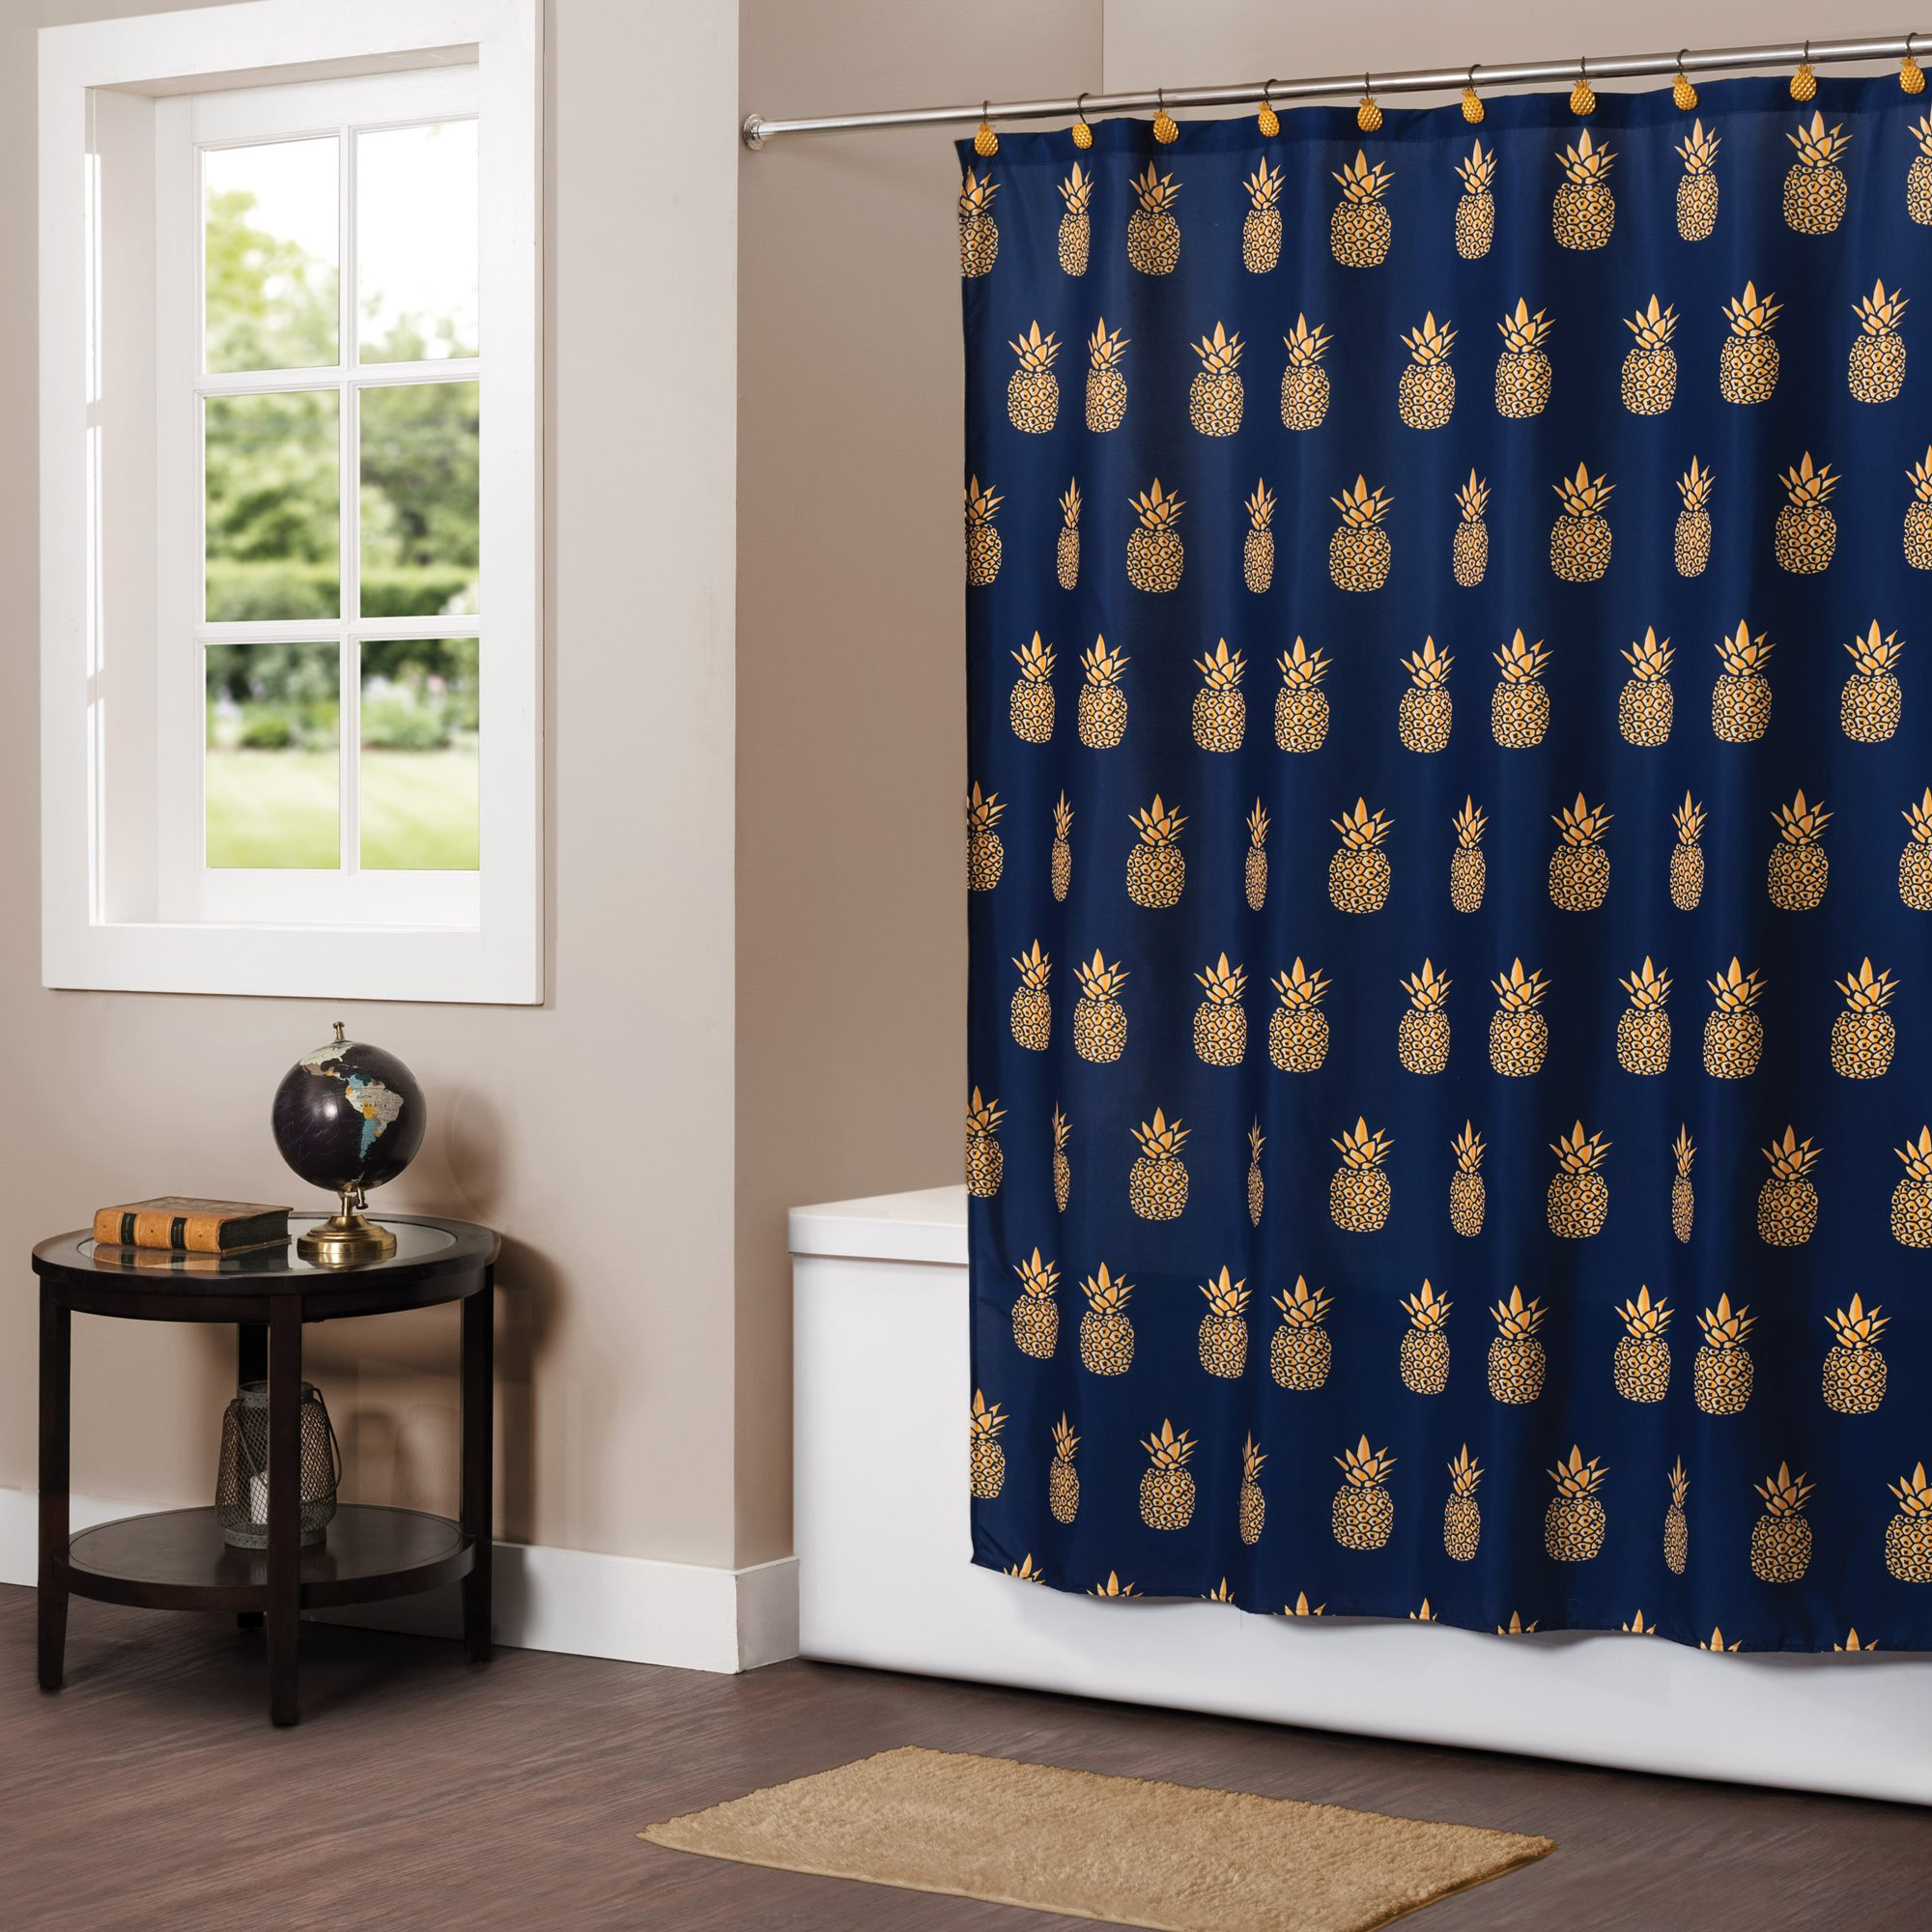 Details About Saturday Knight Ltd Gilded Pineapple Fabric Bath Shower Curtain 72x72 Blue